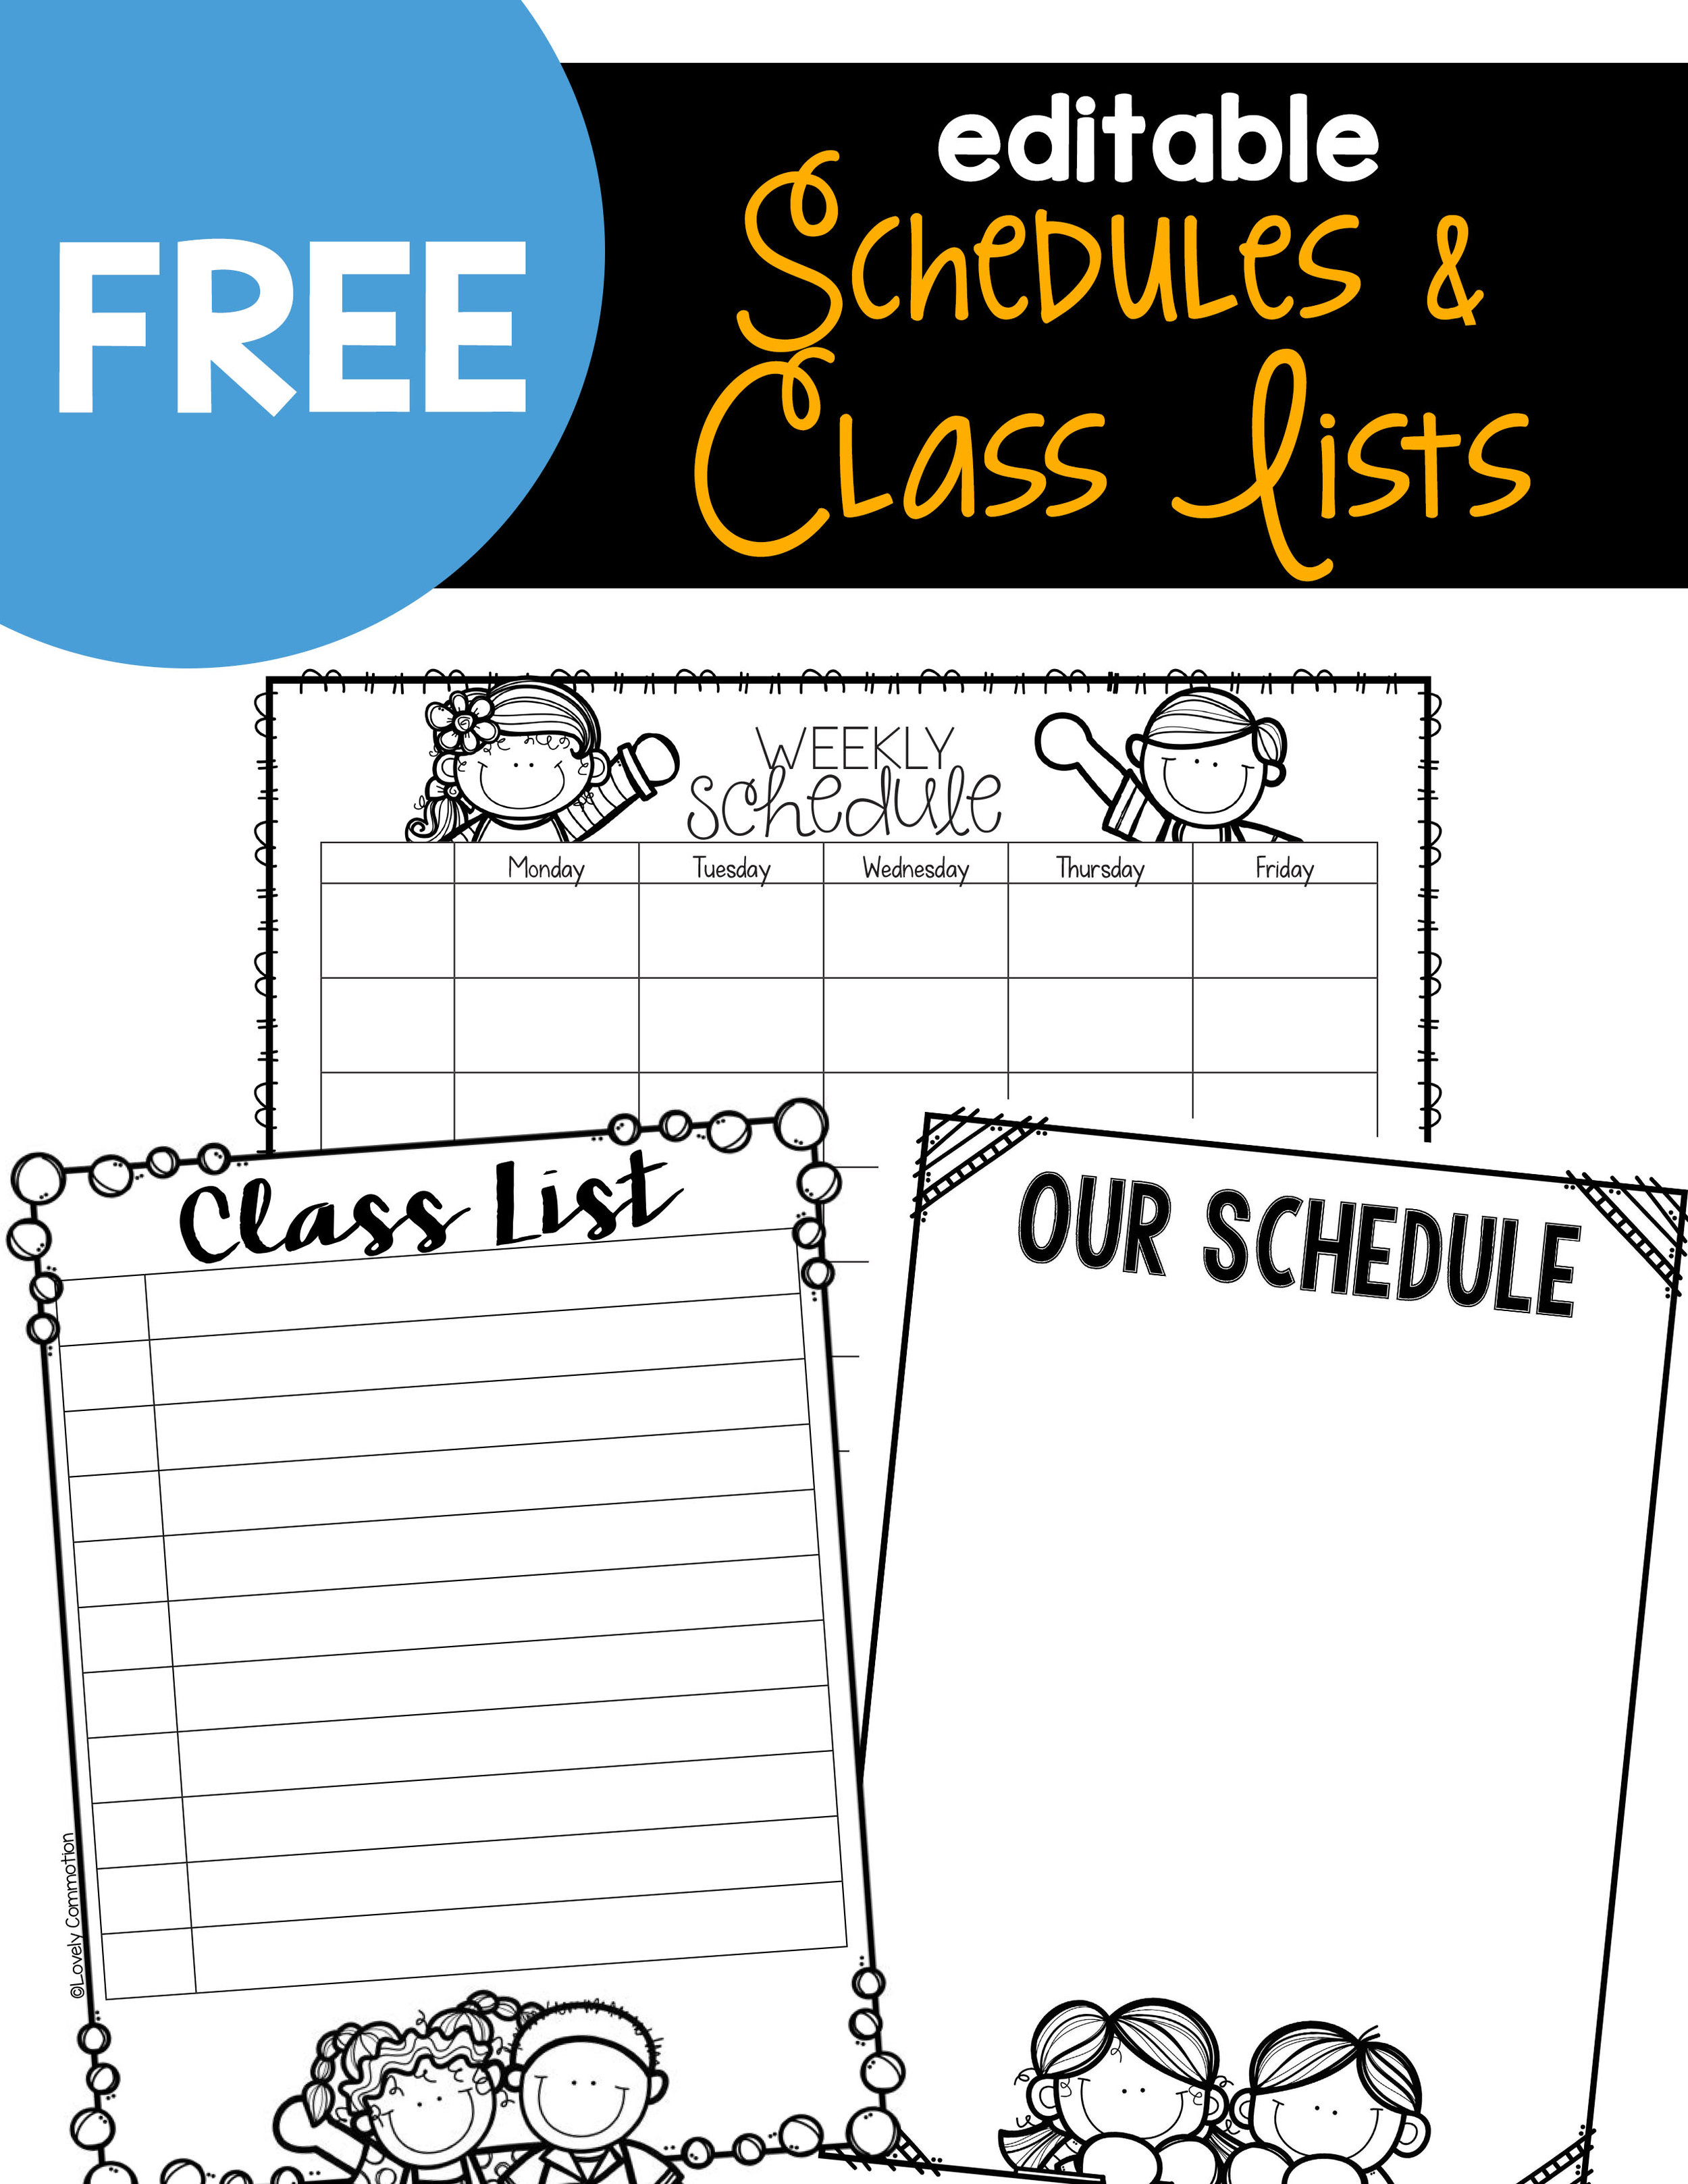 editable schedules class lists